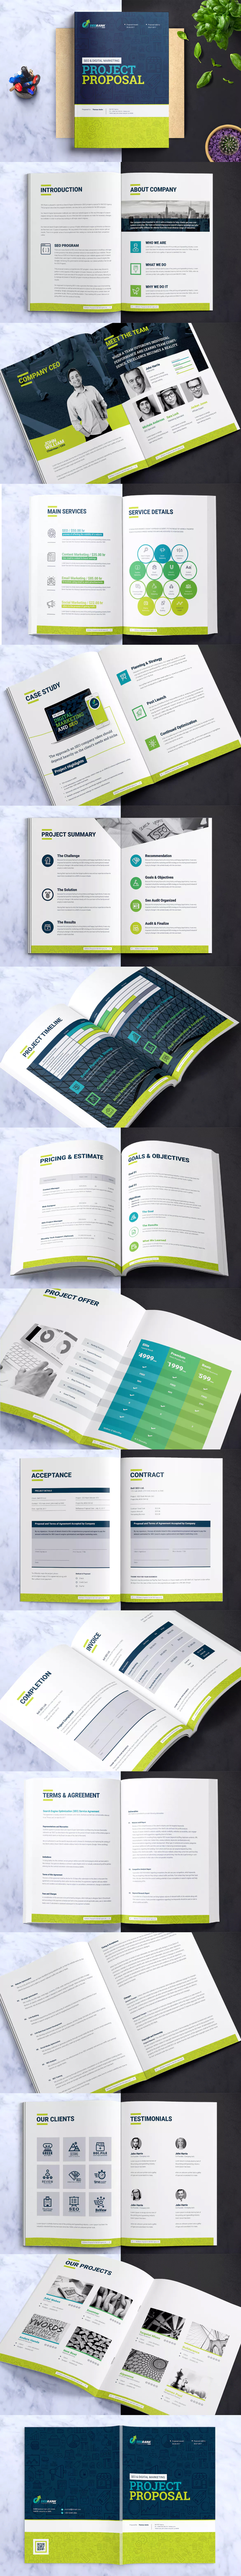 proposal template for word%0A Project Proposal Template SEO  u     Digital Marketing Template InDesign INDD